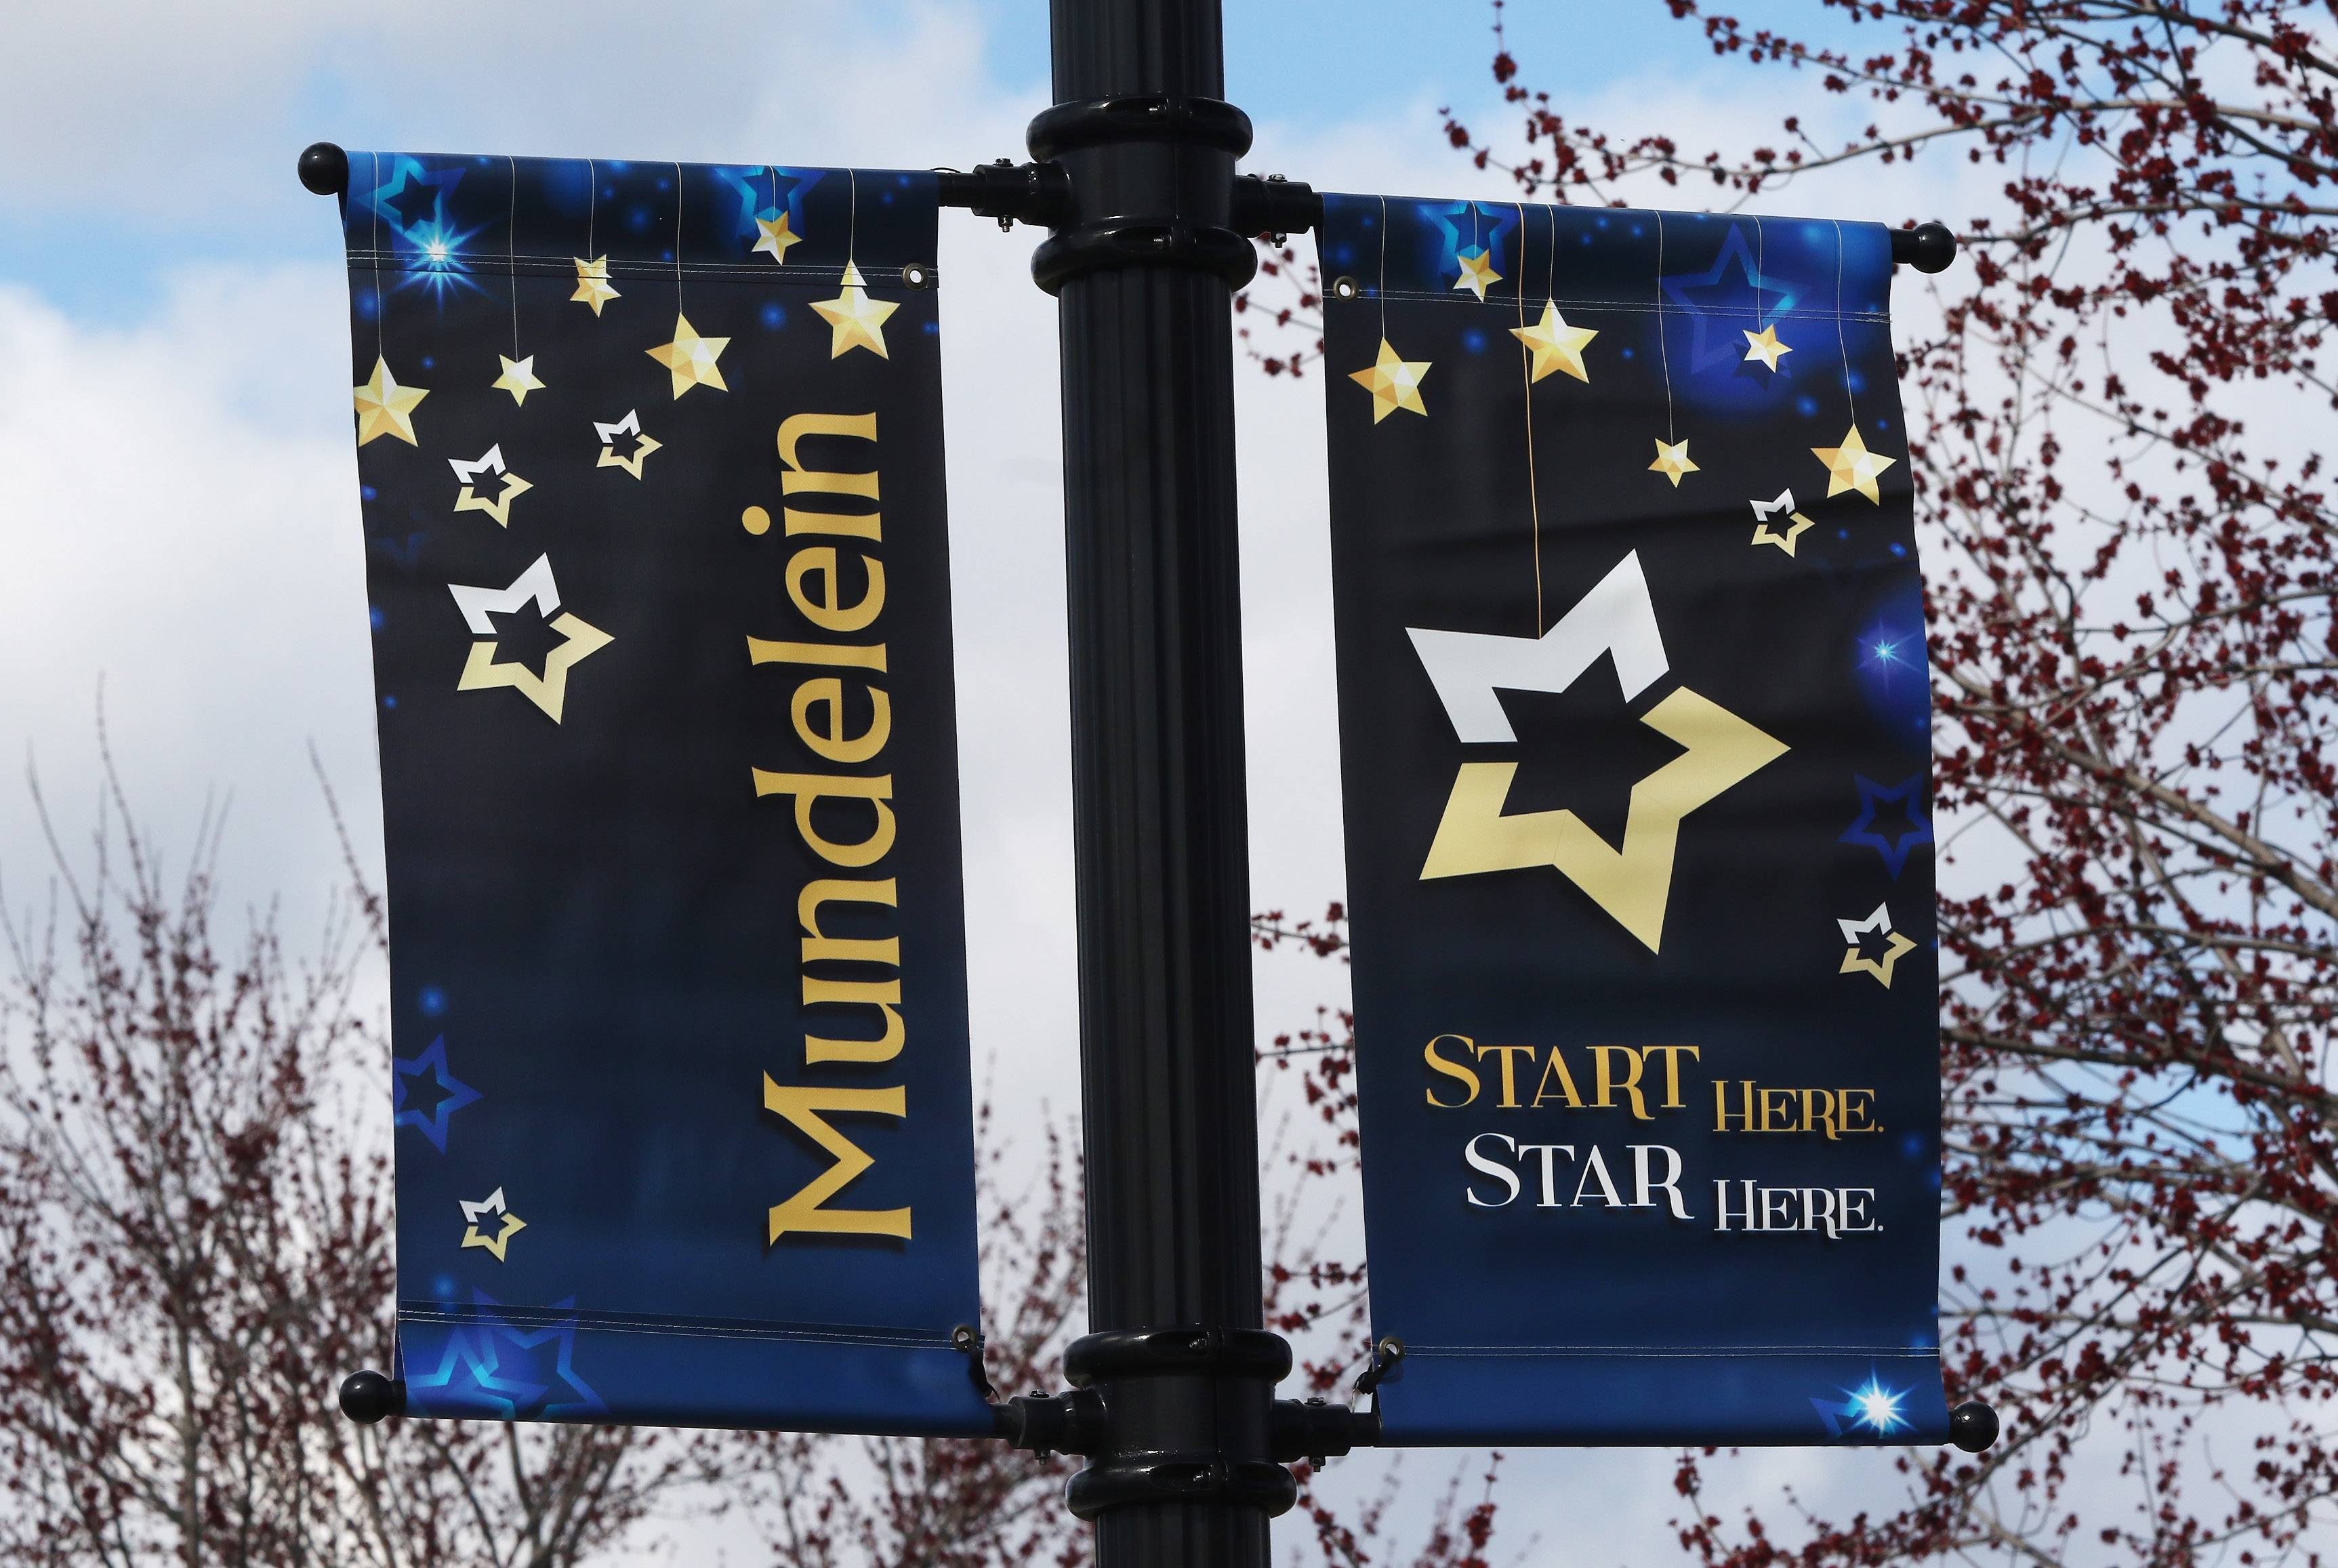 The banners fro Mundelein around the town of Mundelein.